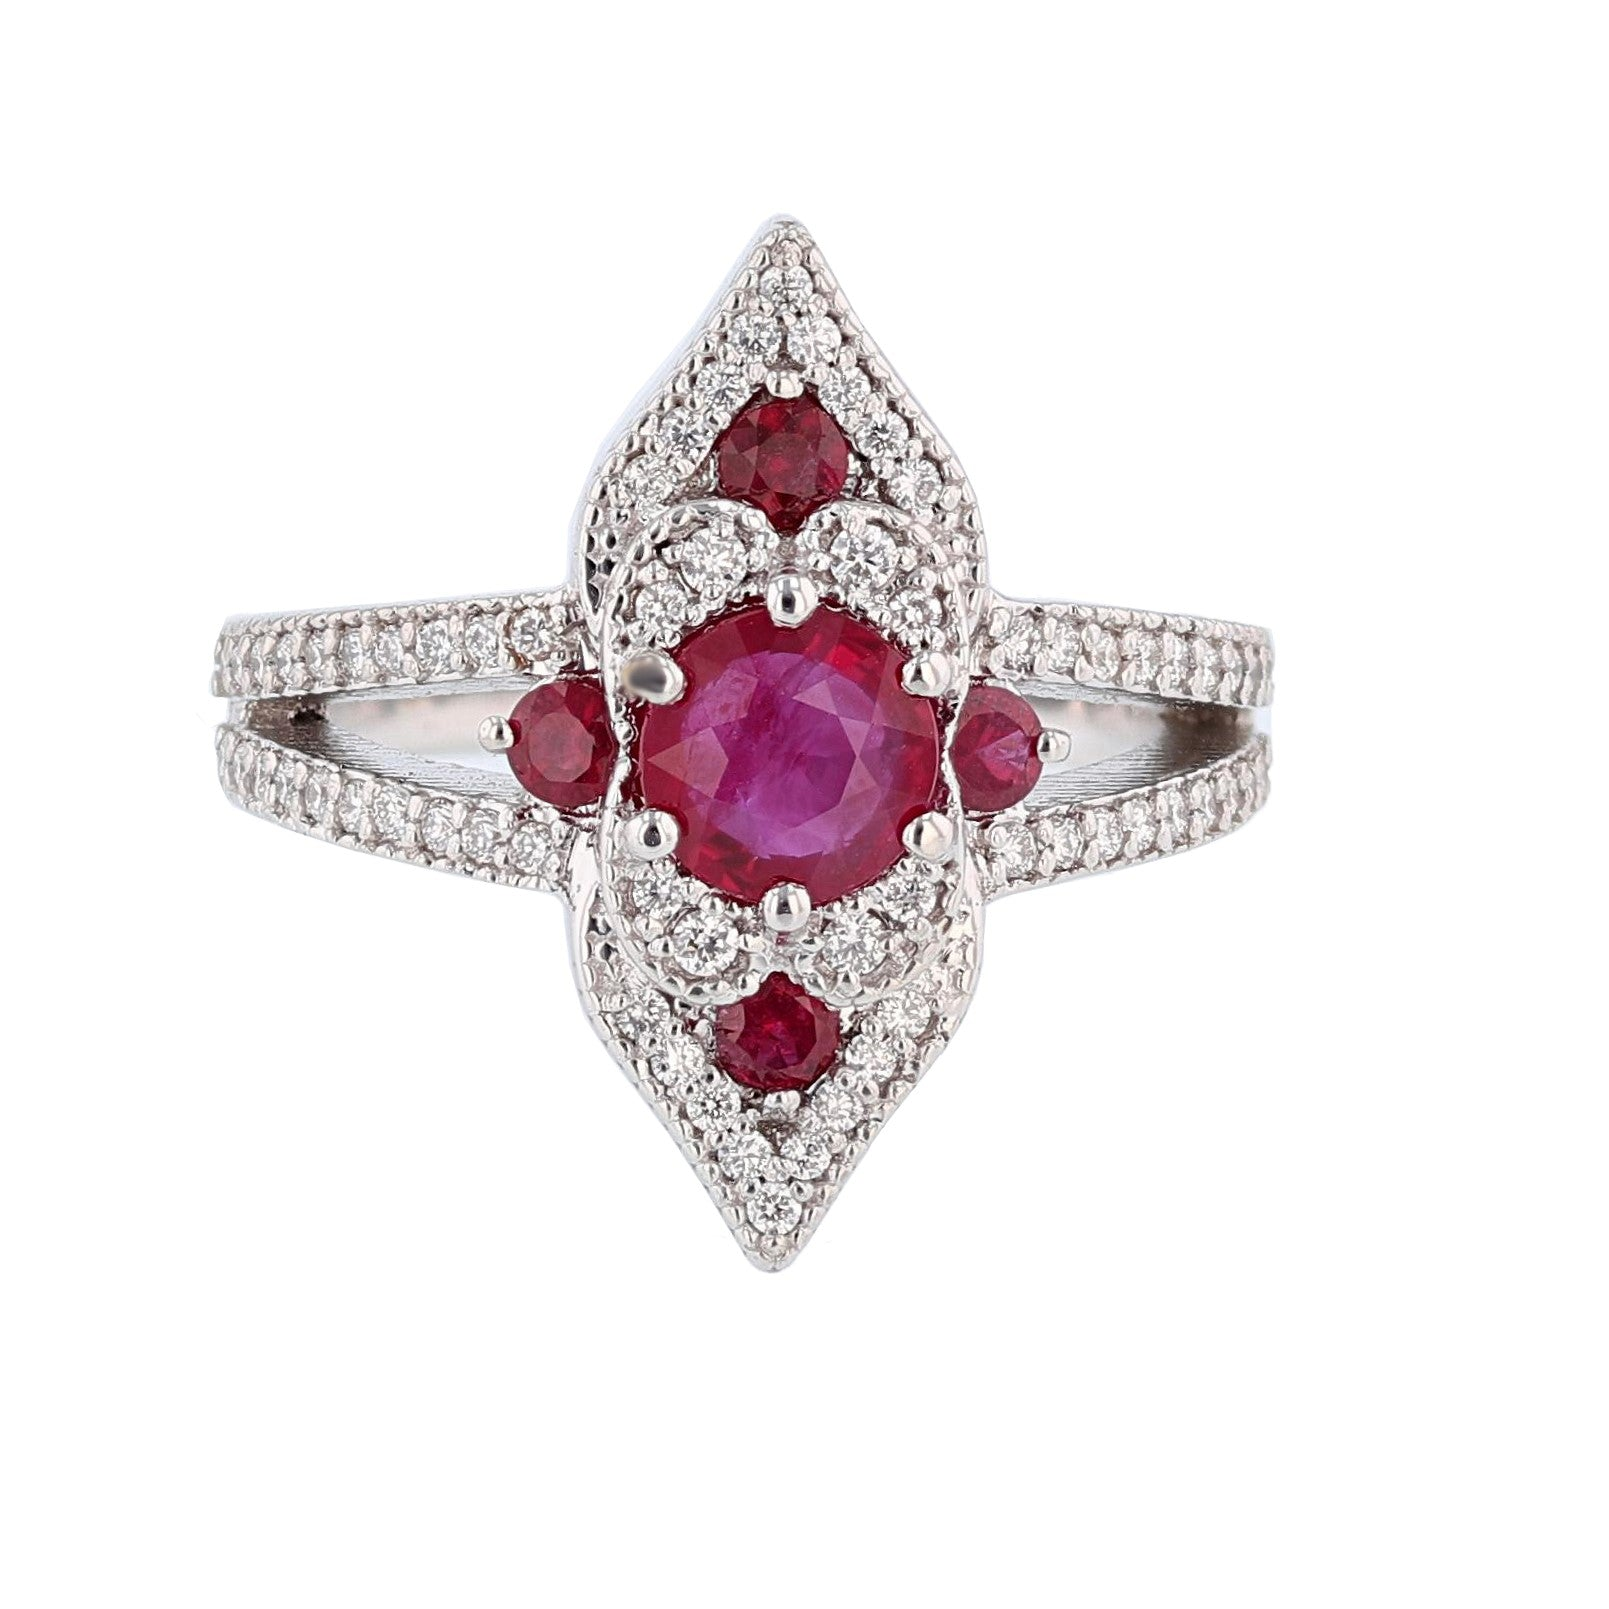 18K White Gold Ruby and Diamond Engagement Ring - Nazarelle